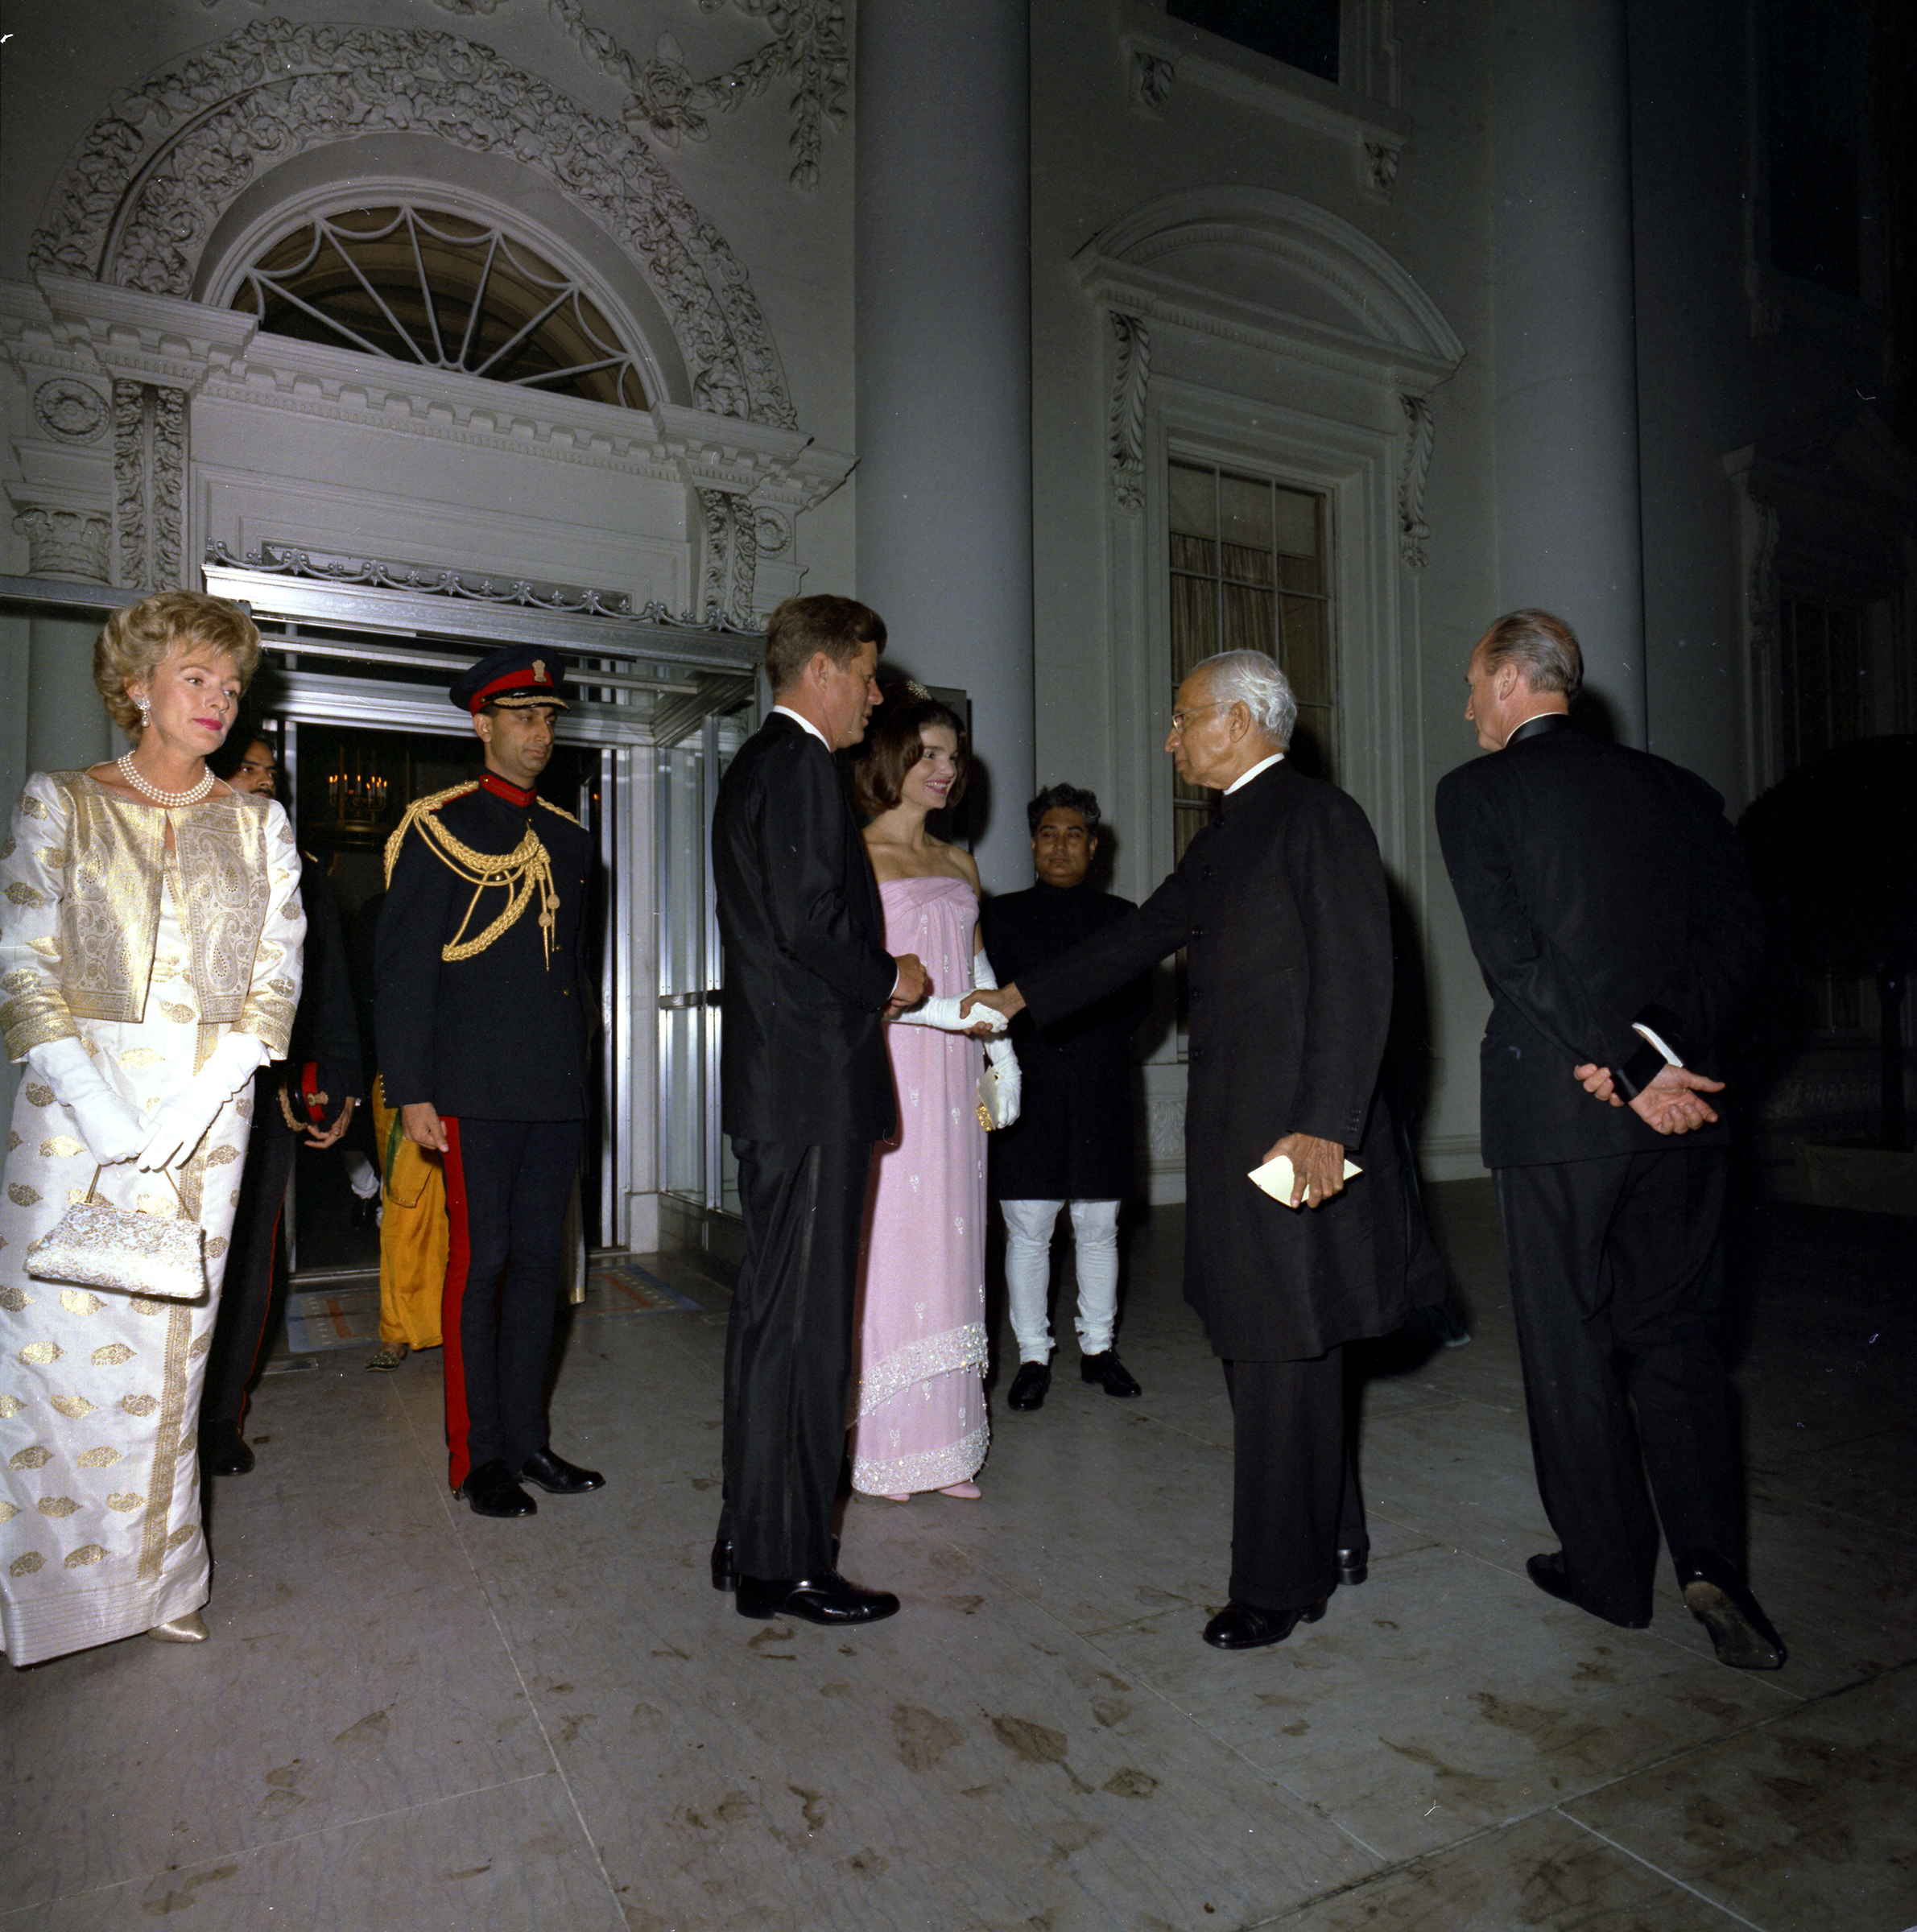 President of India, Dr. Sarvepalli Radhakrishnan, shakes hands with First Lady Jacqueline Kennedy upon his departure from the White House, following a state dinner in his honor; President John F. Kennedy stands at center left. US Chief of Protocol, Angier Biddle Duke, stands at right (back to camera); Robin Chandler Duke (wife of Ambassador Duke) stands at far left. North Portico, White House, Washington, D.C. Robert Knudsen. White House Photographs. John F. Kennedy Presidential Library and Museum, Boston National Archives and Records Administration http://www.jfklibrary.org/Asset-Viewer/Archives/JFKWHP-KN-C28877.aspx